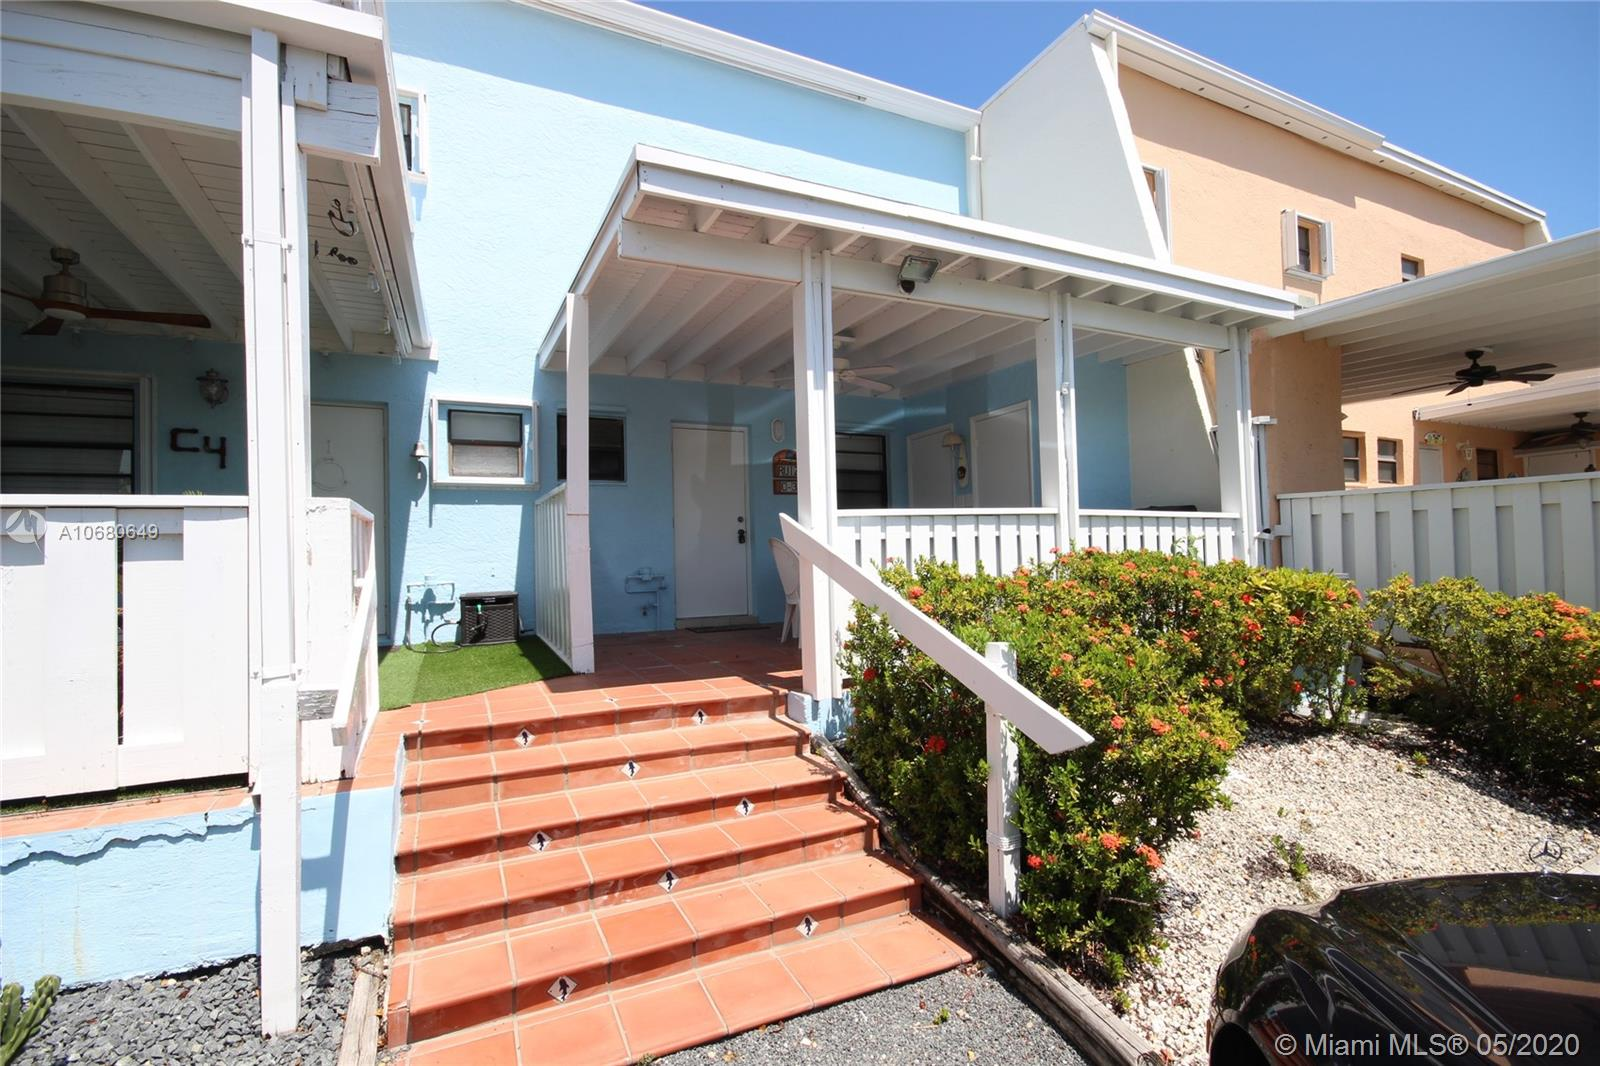 GREAT LOCATION! Very well maintained, two level townhouse unit with 2 bedrooms & 2 bathrooms. This unit has a front large covered porch, storage, a screen porch off the living area and another screened area upstairs. New Roofs recently installed as well as paint. This unit is right by the lagoon, pool and chickee hut / BBQ area. Kids have a playground area... tennis, beach and a boat ramp with slips available for rent. Come enjoy resort amenities!